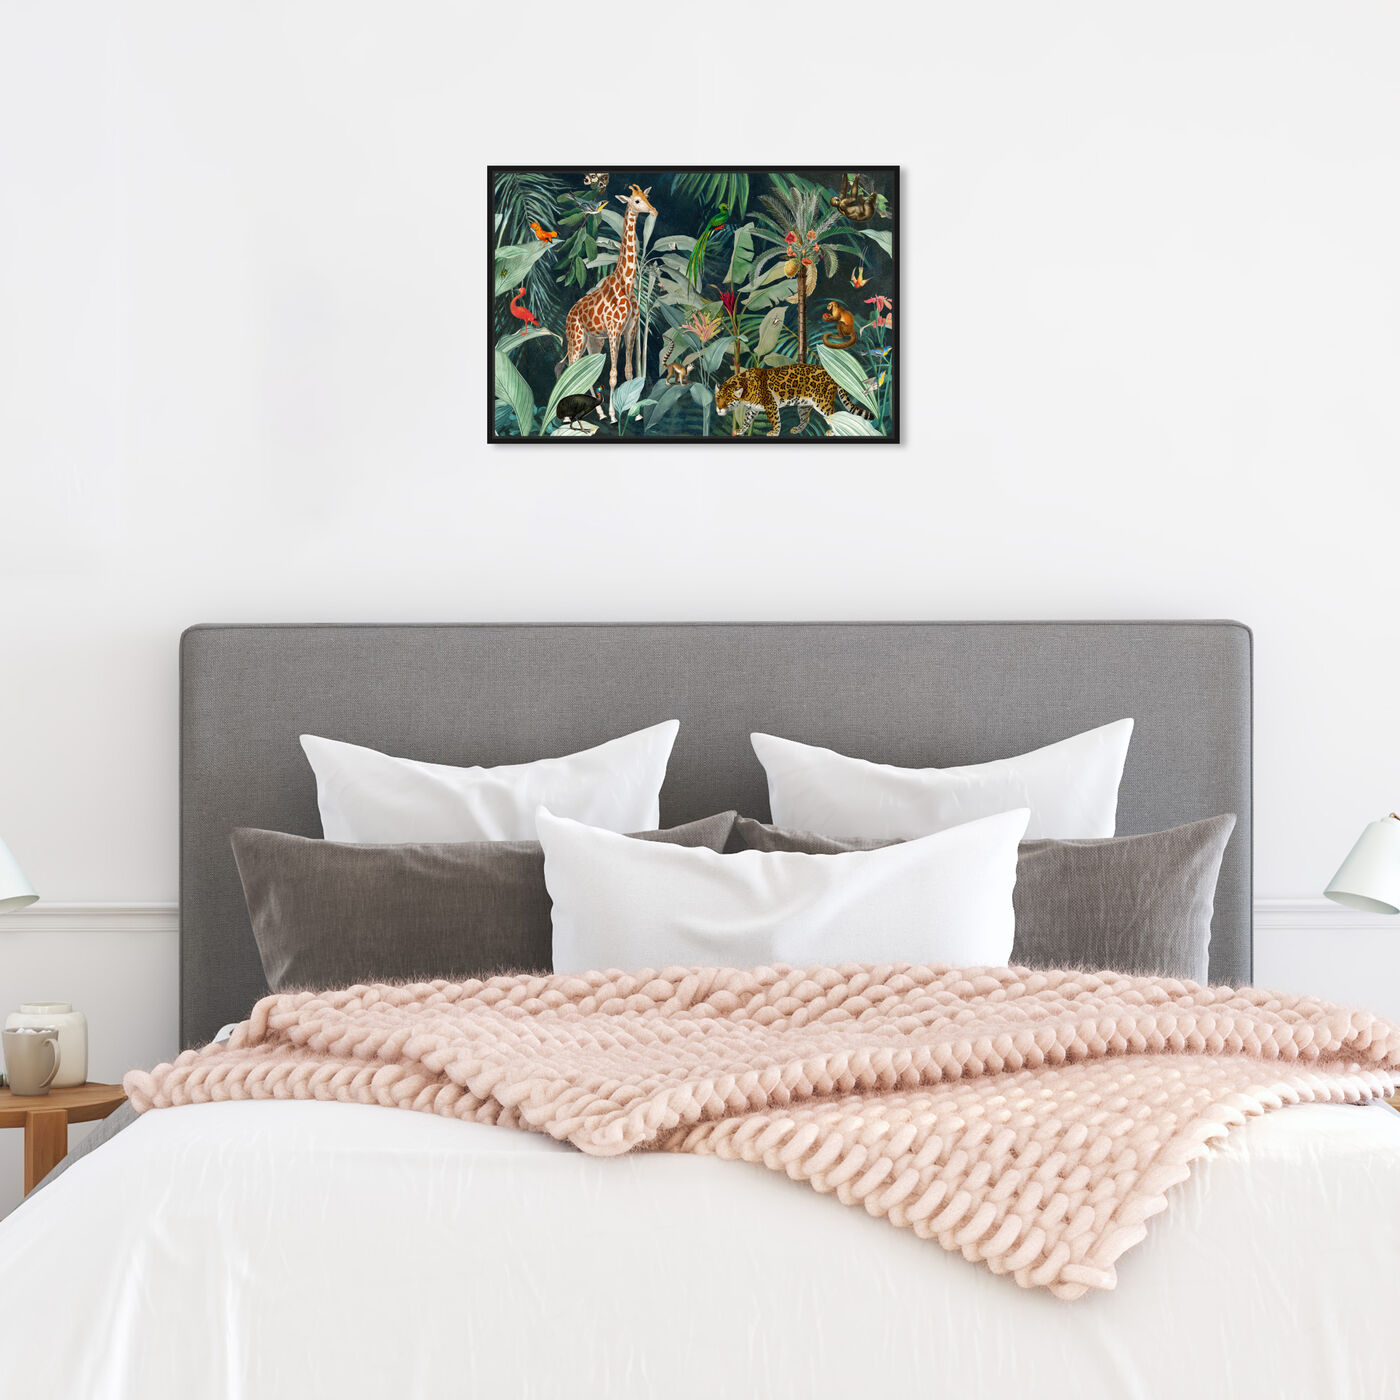 Hanging view of Jungle Reves featuring animals and zoo and wild animals art.